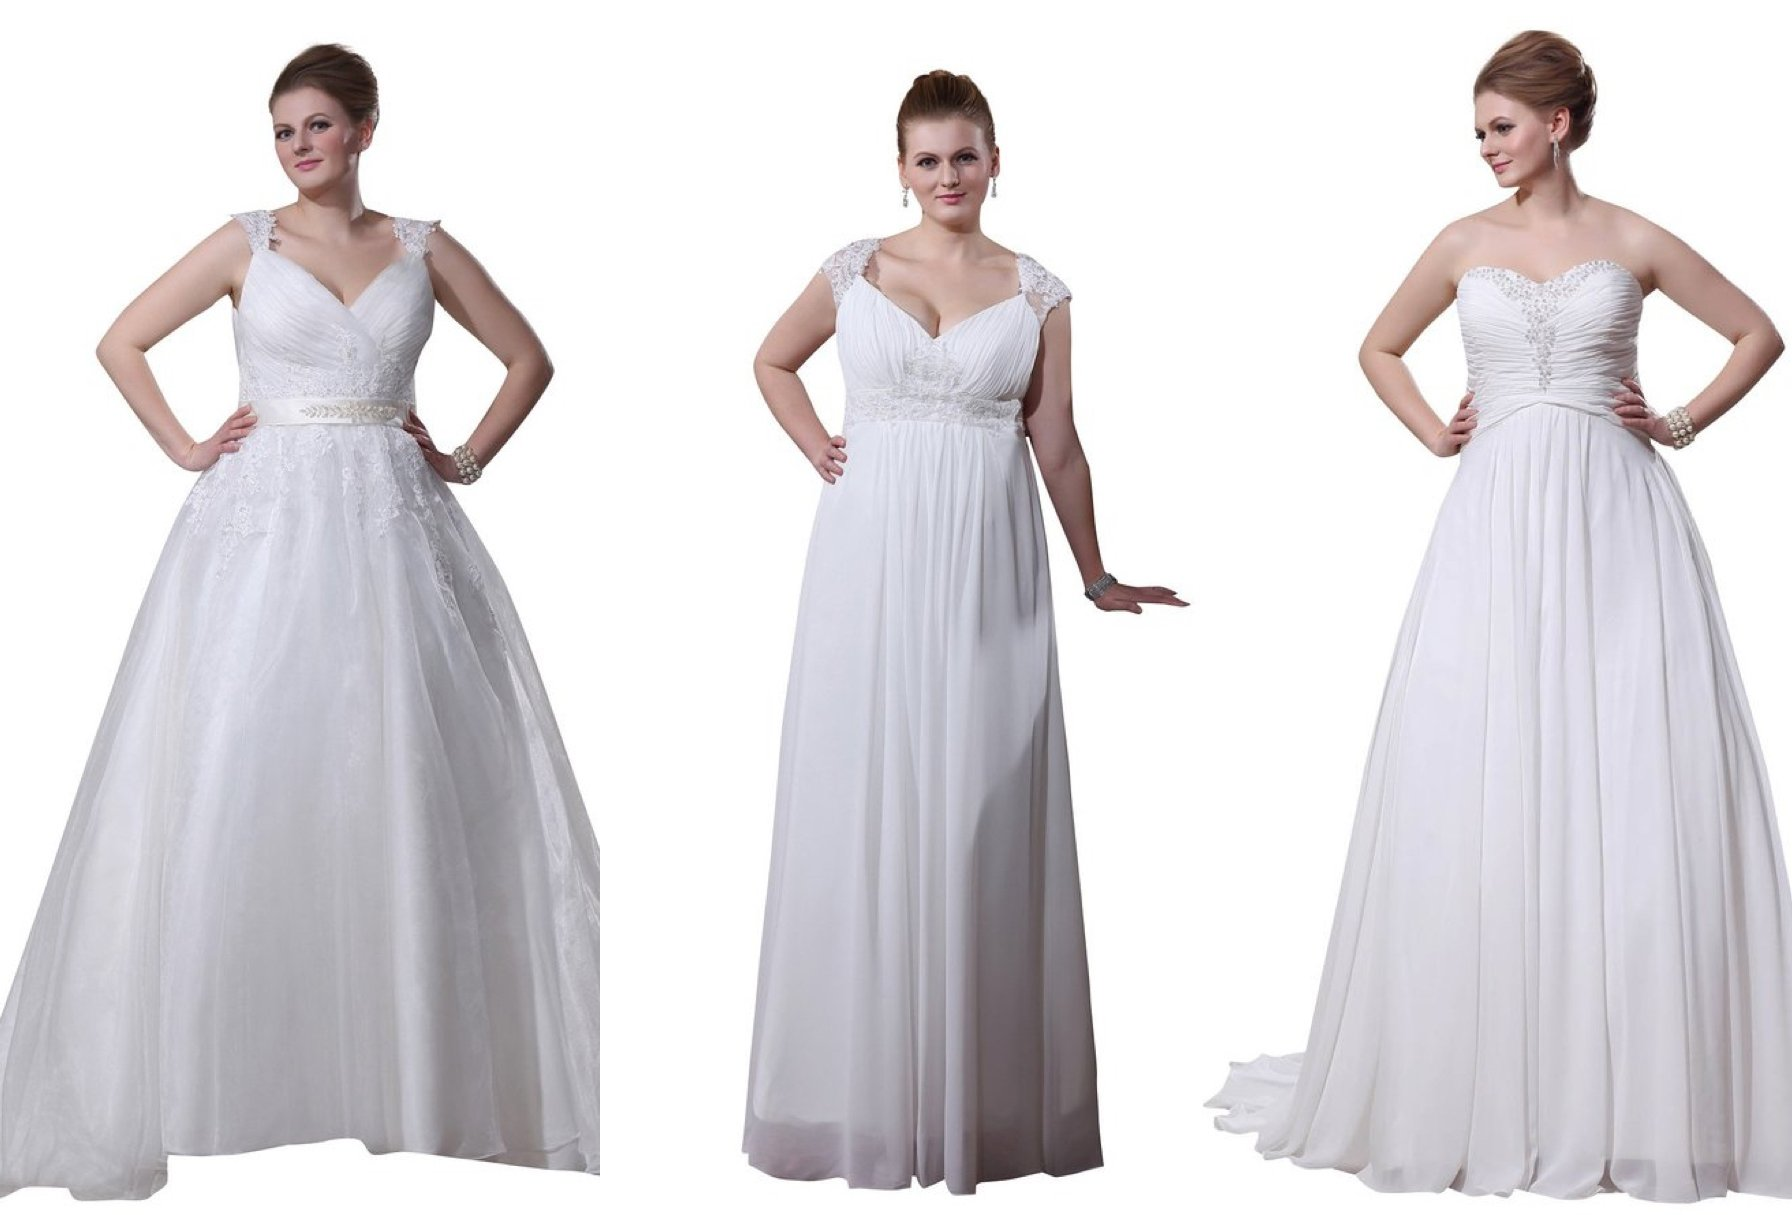 Affordable plus size wedding gowns with quick delivery affordable plus size wedding gowns with quick delivery ombrellifo Gallery